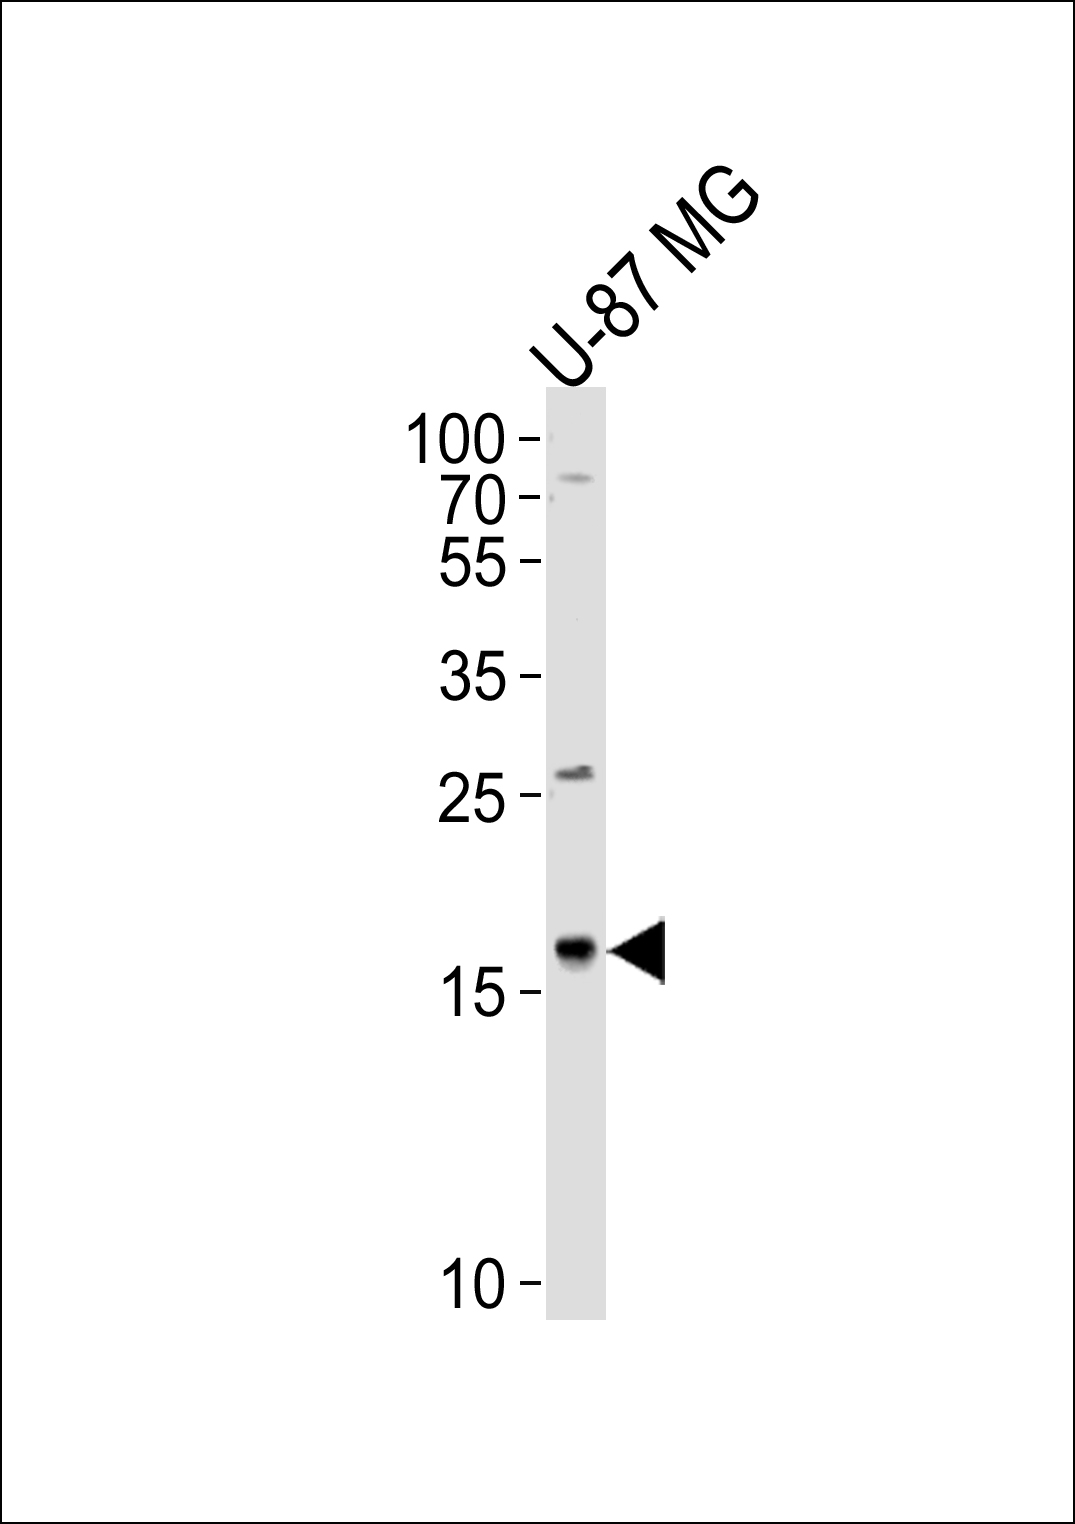 Western blot of lysate from U-87 MG cell line, using CXCL2 Antibody. Antibody was diluted at 1:1000 at each lane. A goat anti-rabbit IgG H&L (HRP) at 1:5000 dilution was used as the secondary antibody. Lysate at 35ug per lane.